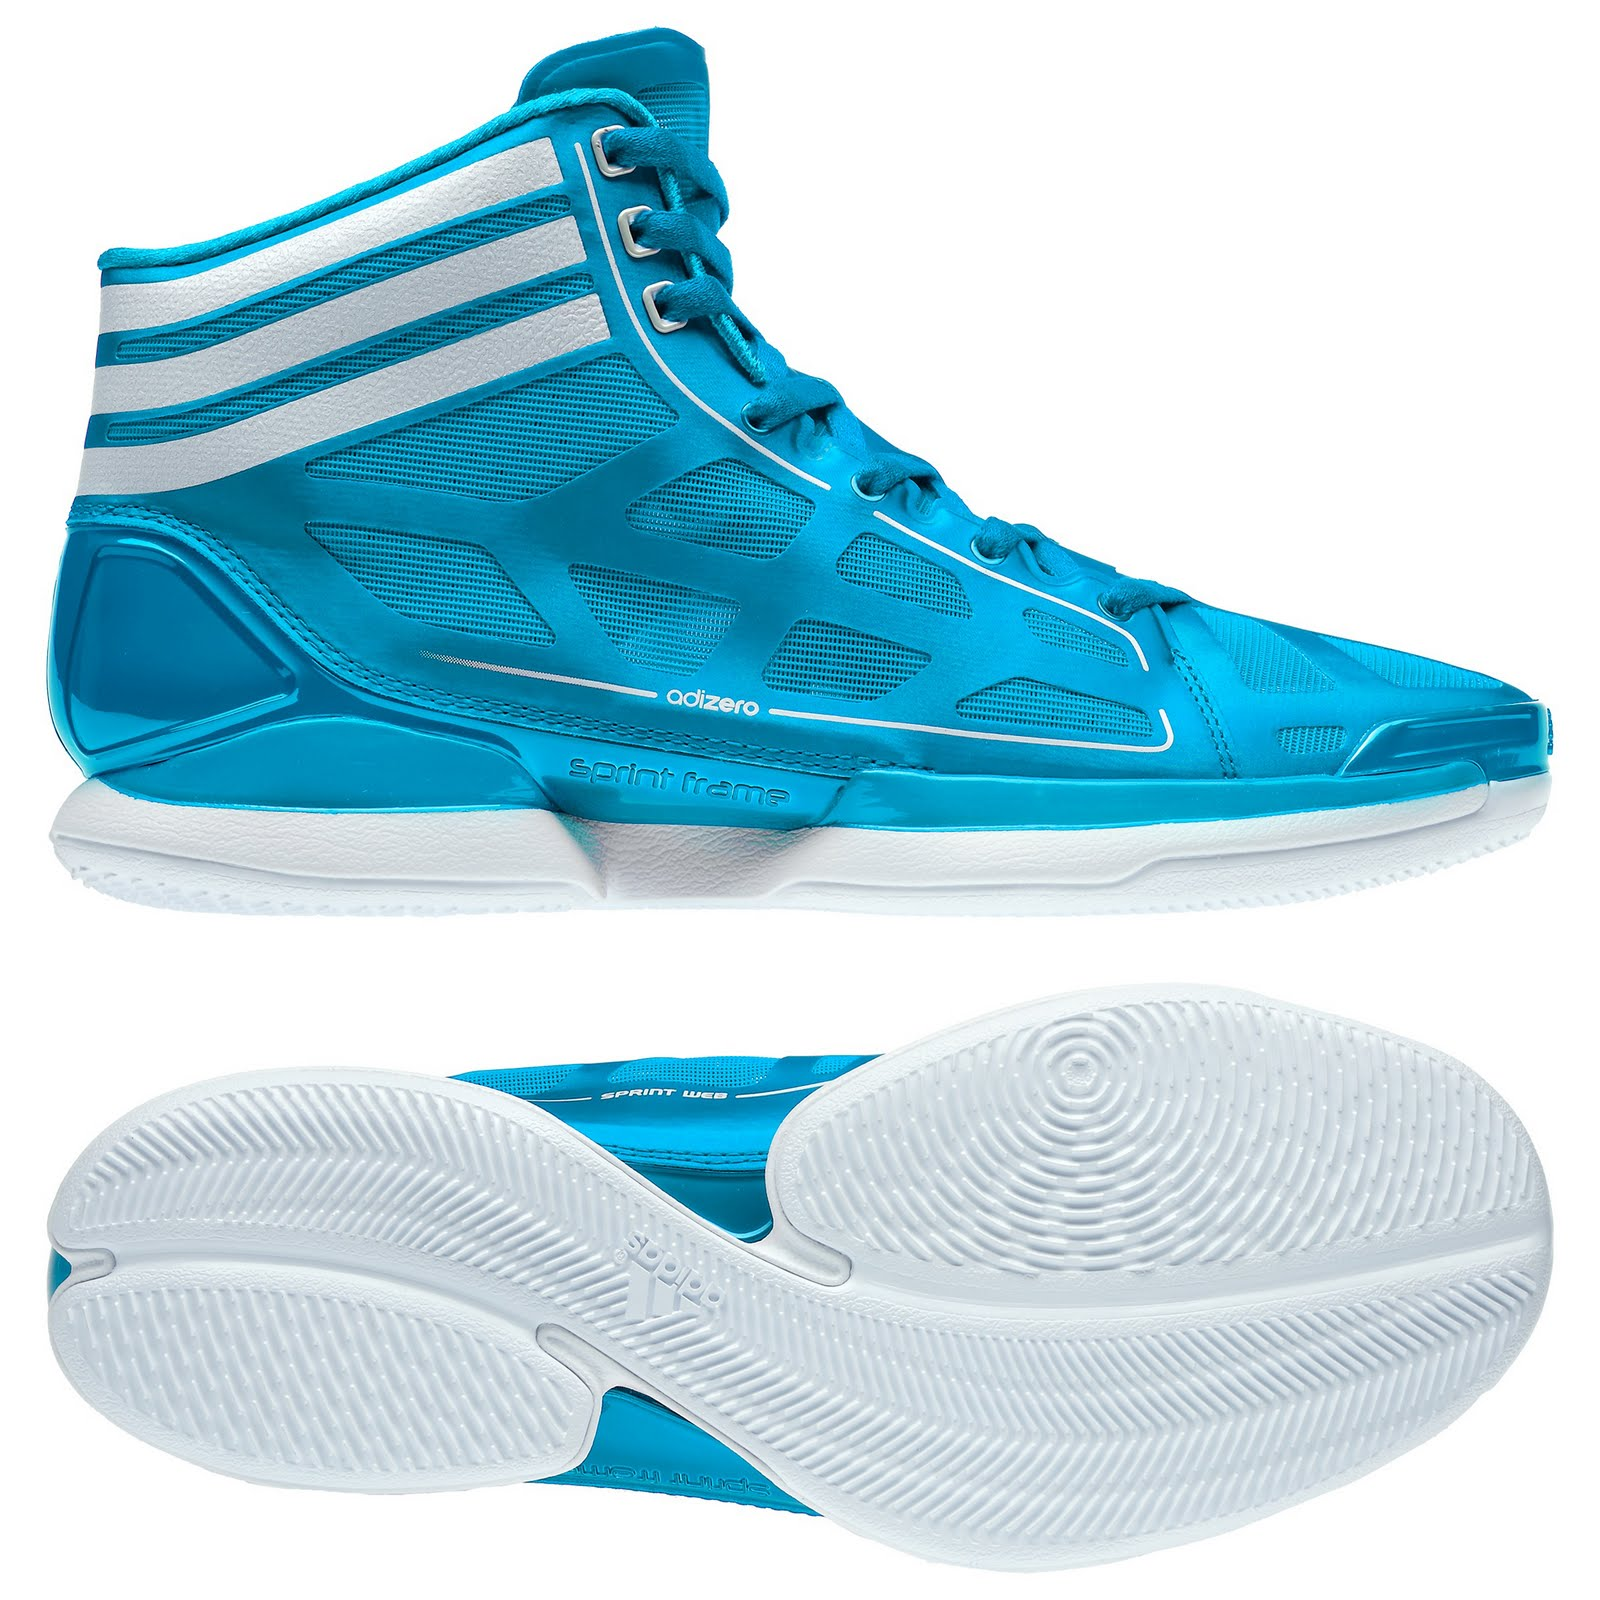 purchase cheap 672fa a1ce3 Detailed look at the AdiZero Crazy Light s lateral view and outsole. (Image  Courtesy of Adidas Philippines). The shoe s ...